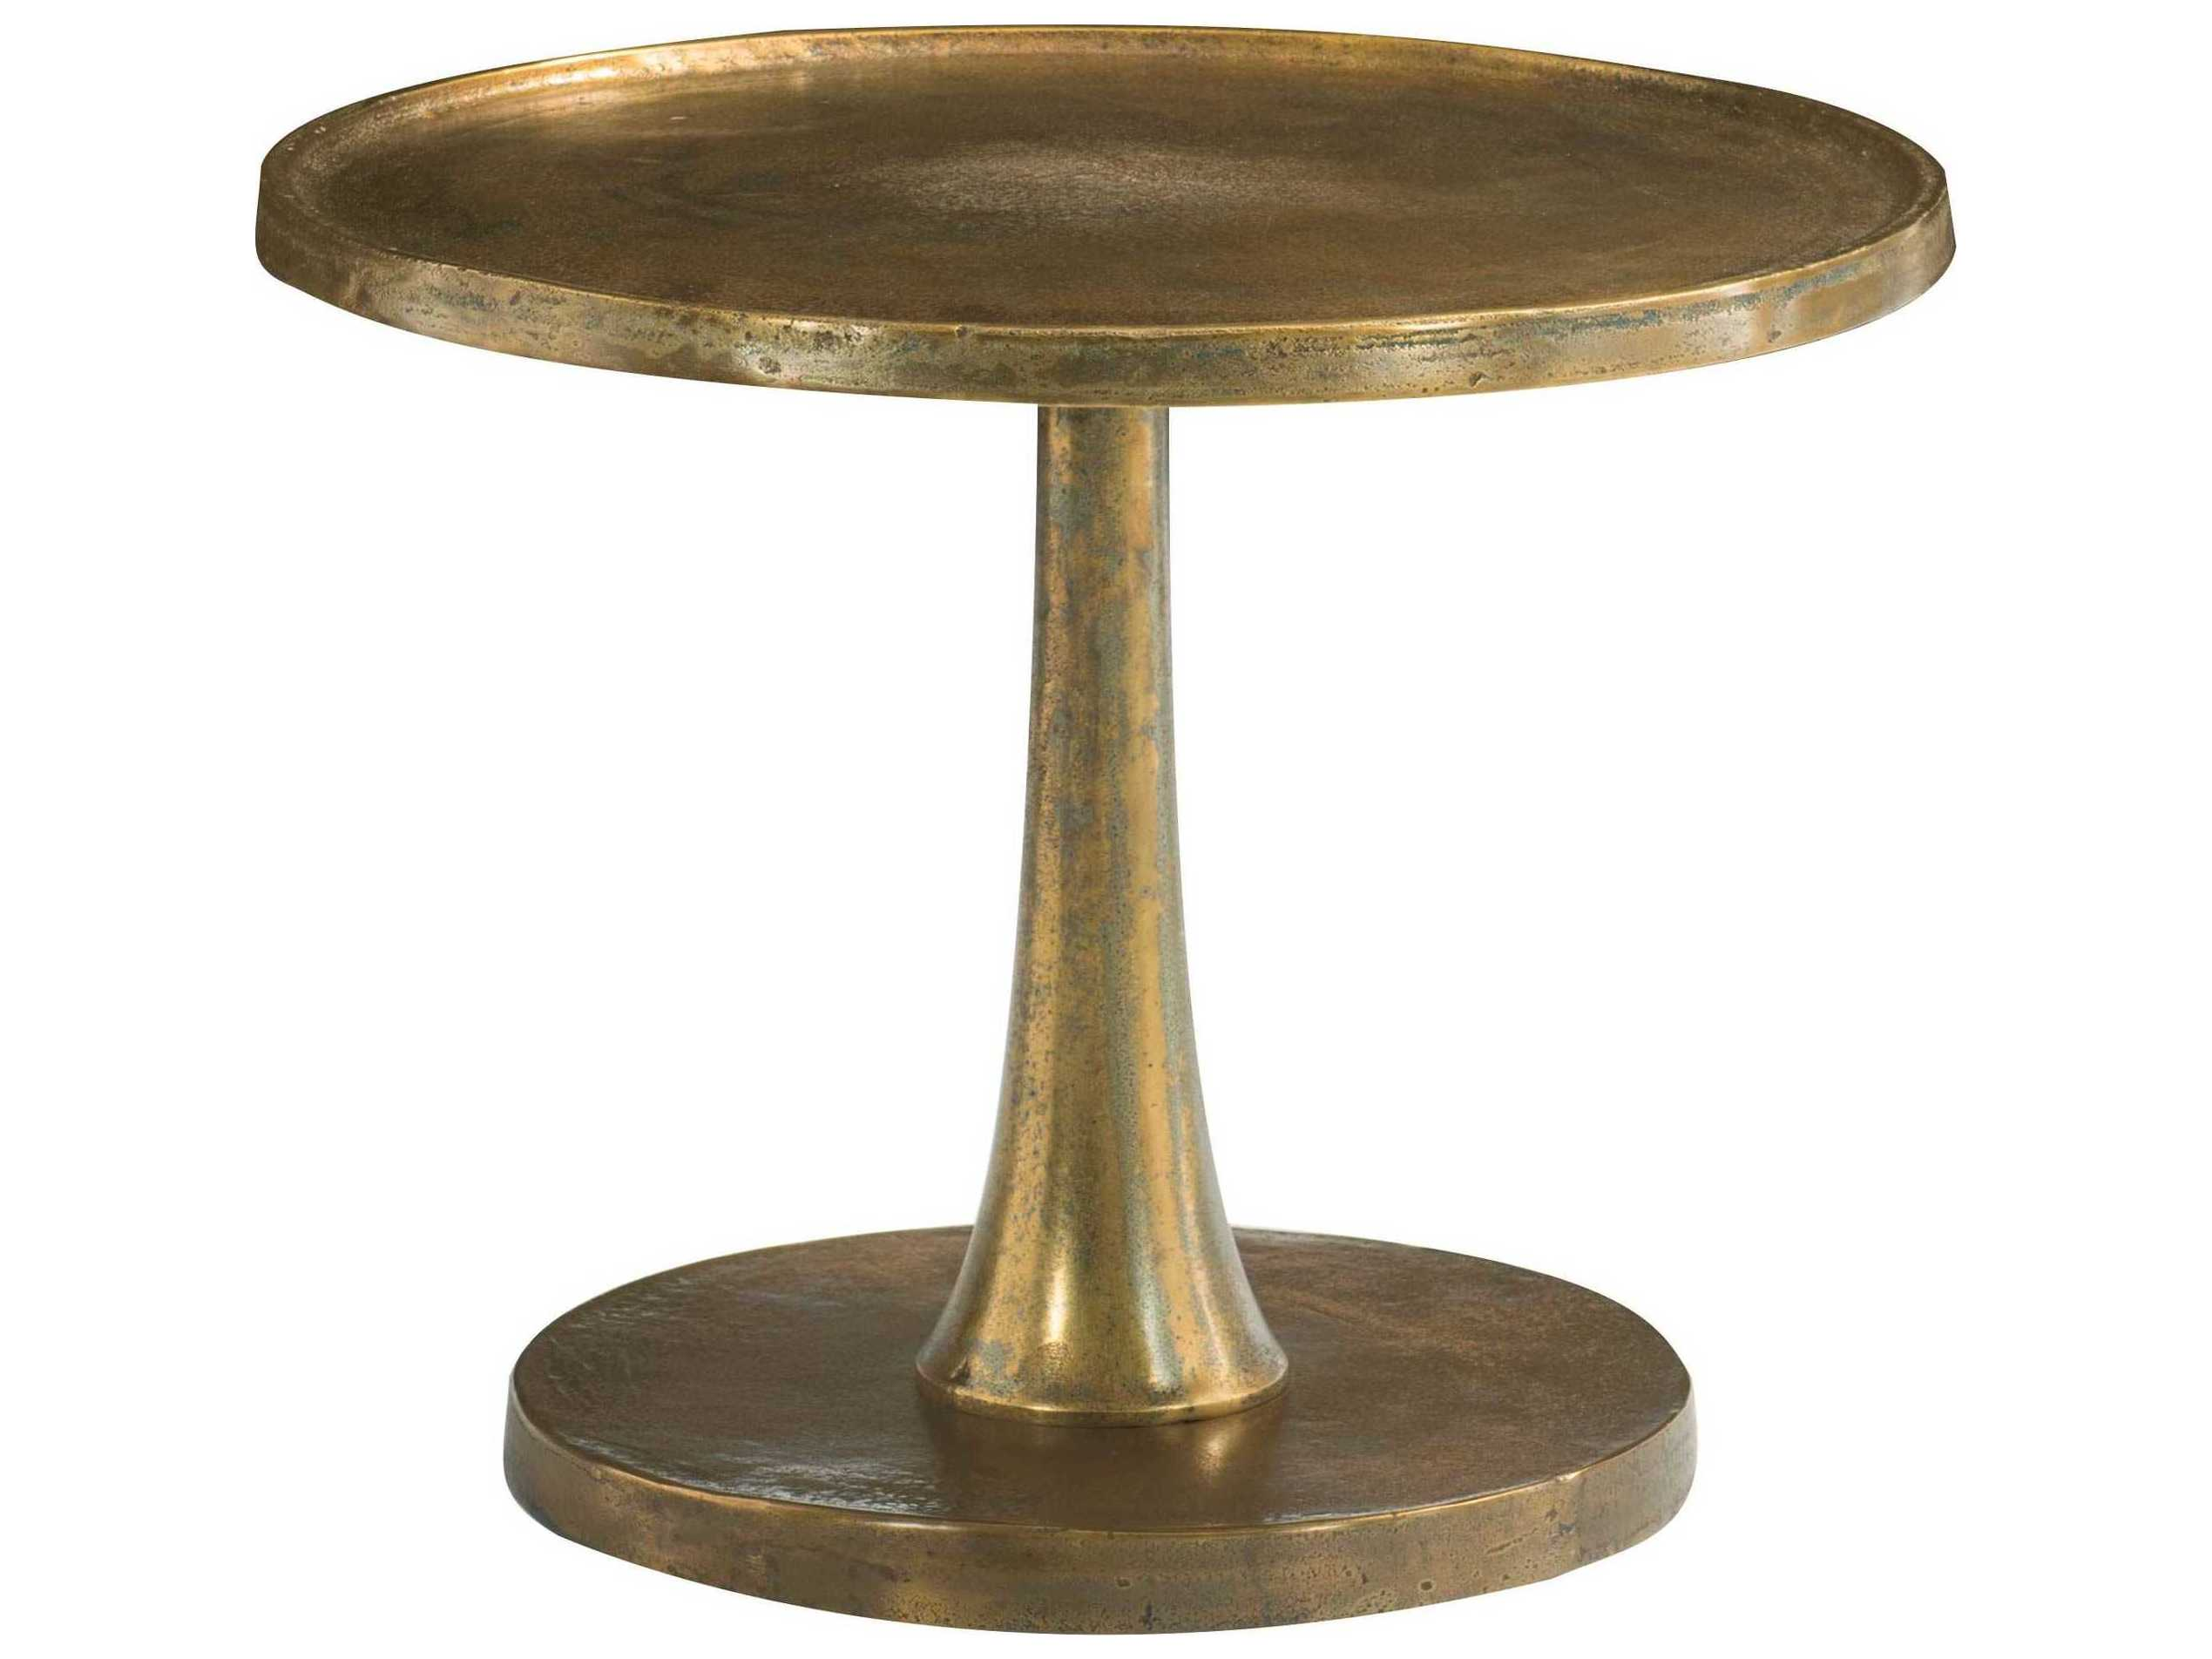 Bernhardt Benson Vintage Brass 27 Wide Round Pedestal Table Bh438125